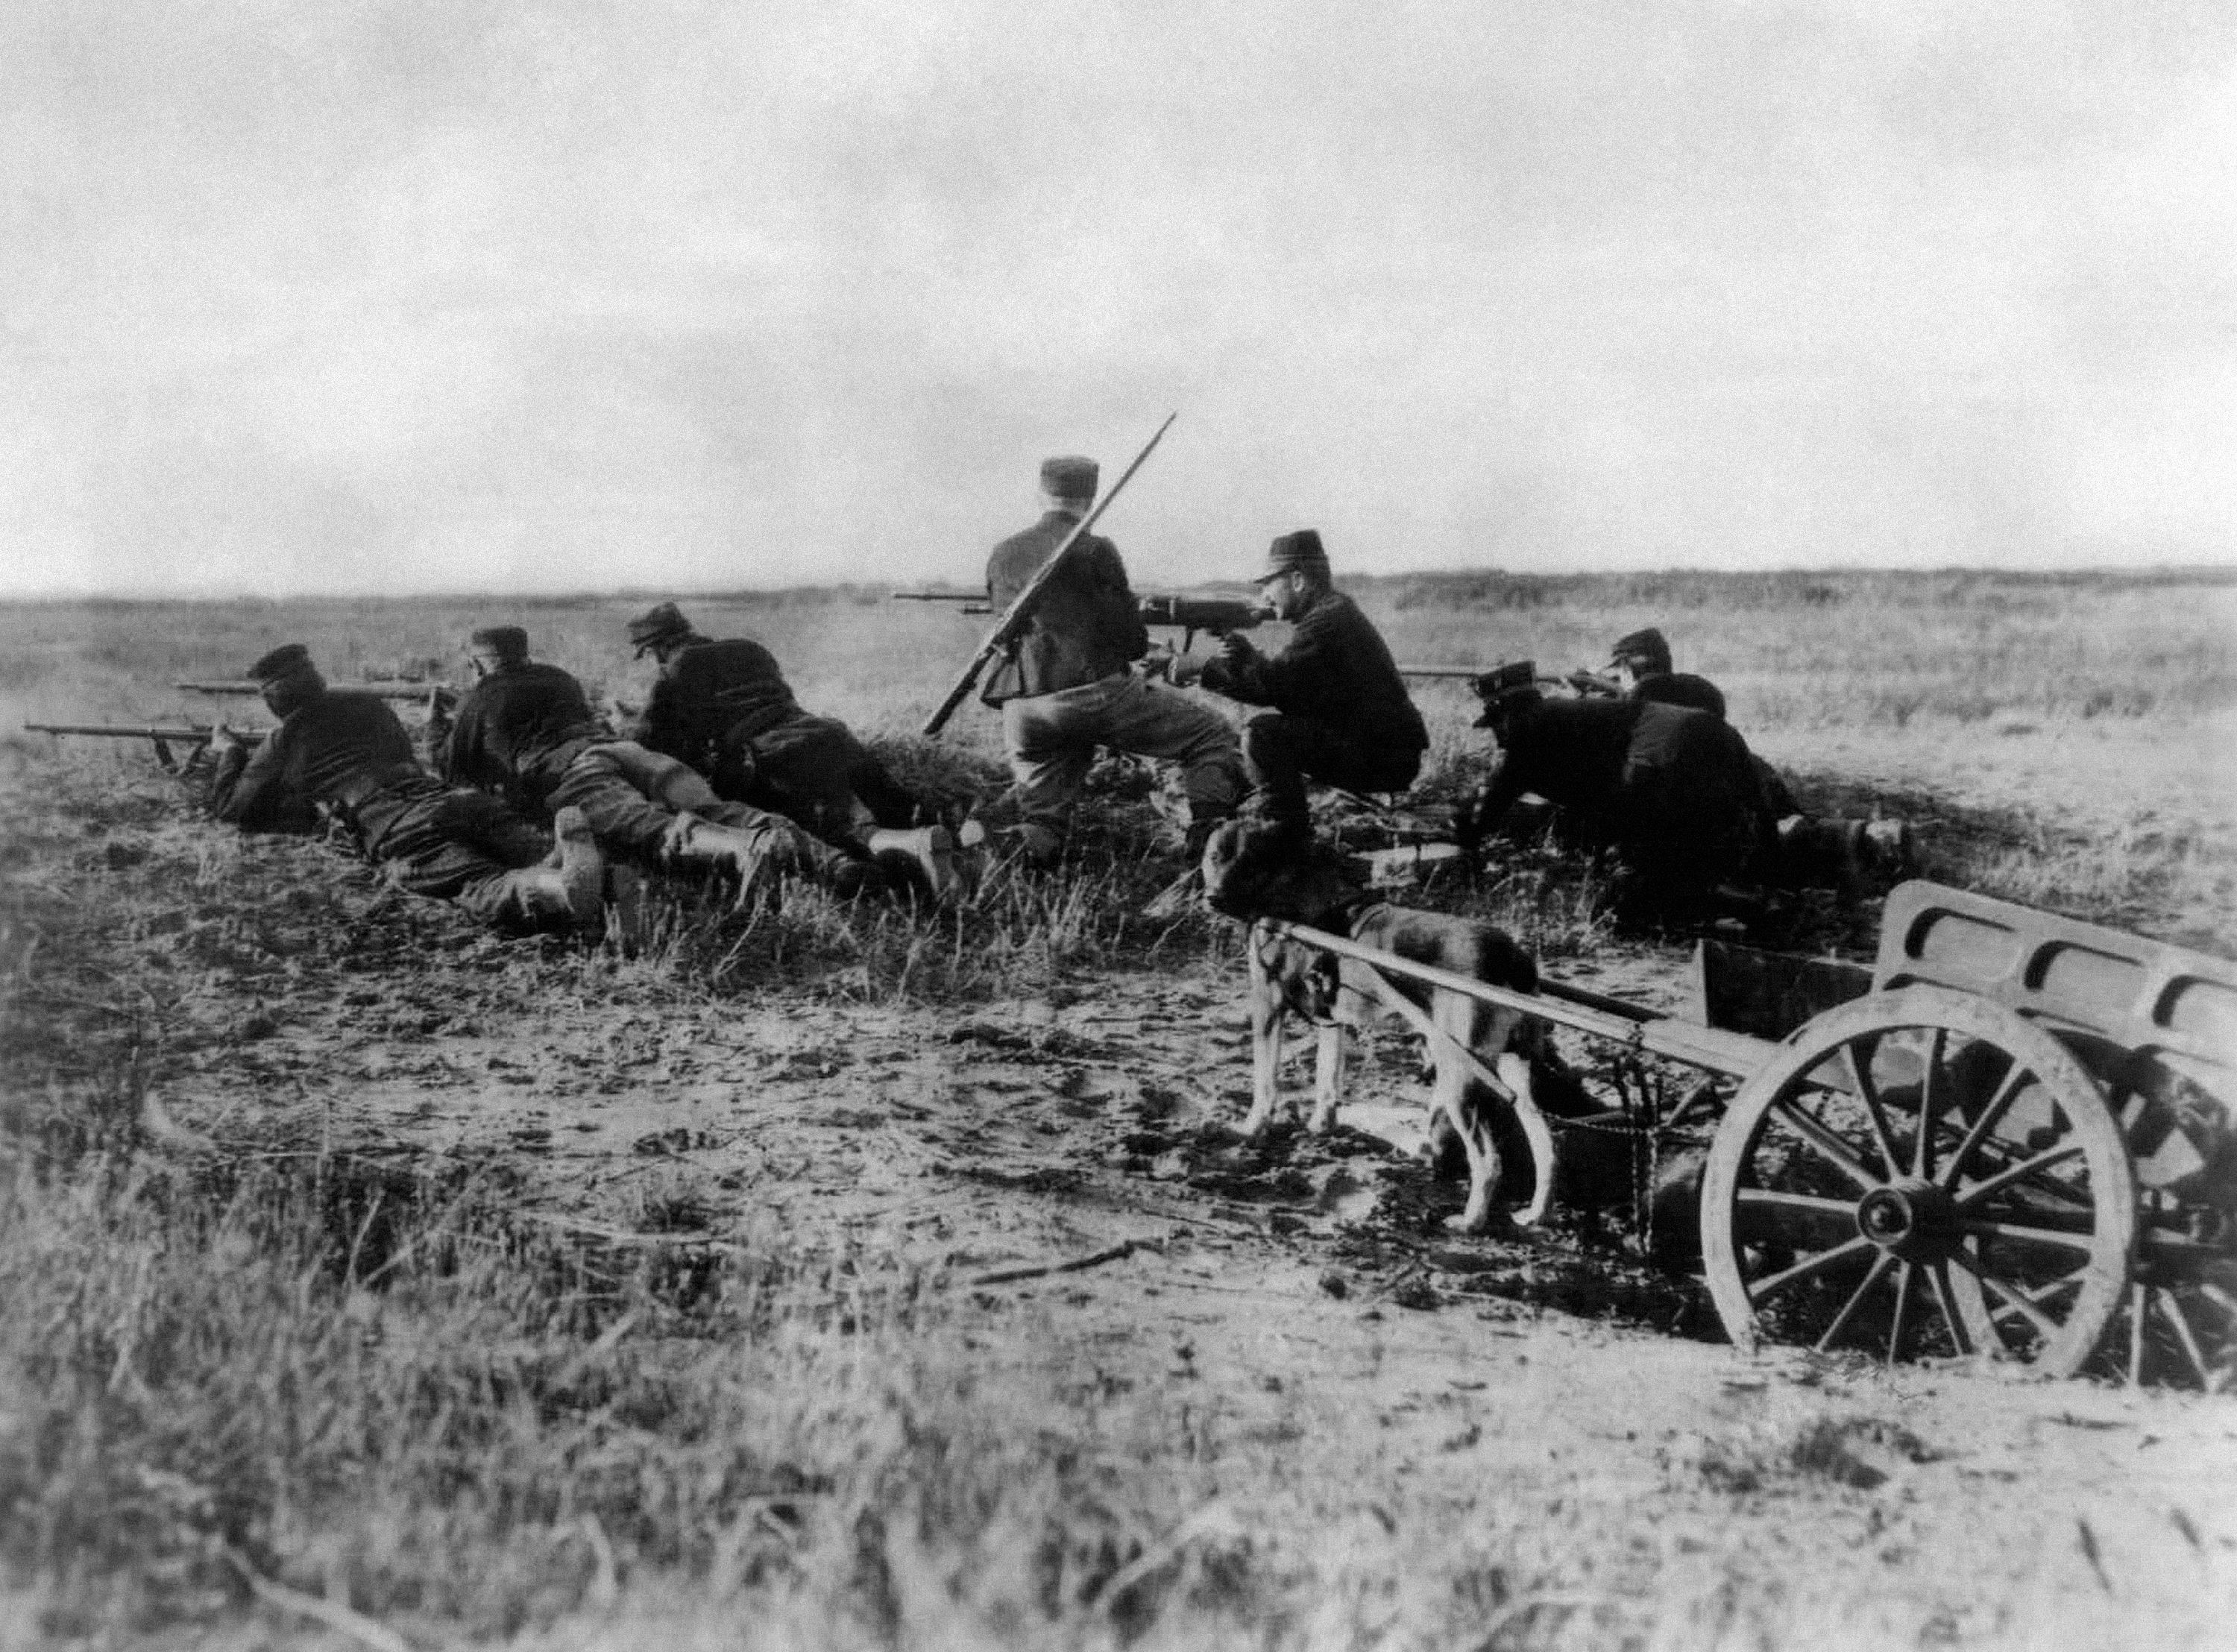 FILE - A Belgian machine gun detachment aims near Haelen, with a dog pulling a cart in August 1914. The Belgians used dogs to draw these guns and ammunitions. They were messengers, spies, sentinels and the heavy haulers of World War I, carrying supplies, munitions and food and leading cavalry charges. The horses, mules, dogs and pigeons were a vital part of the Allied war machine, saving countless lives _ and dying by the millions. (AP Photo, File)